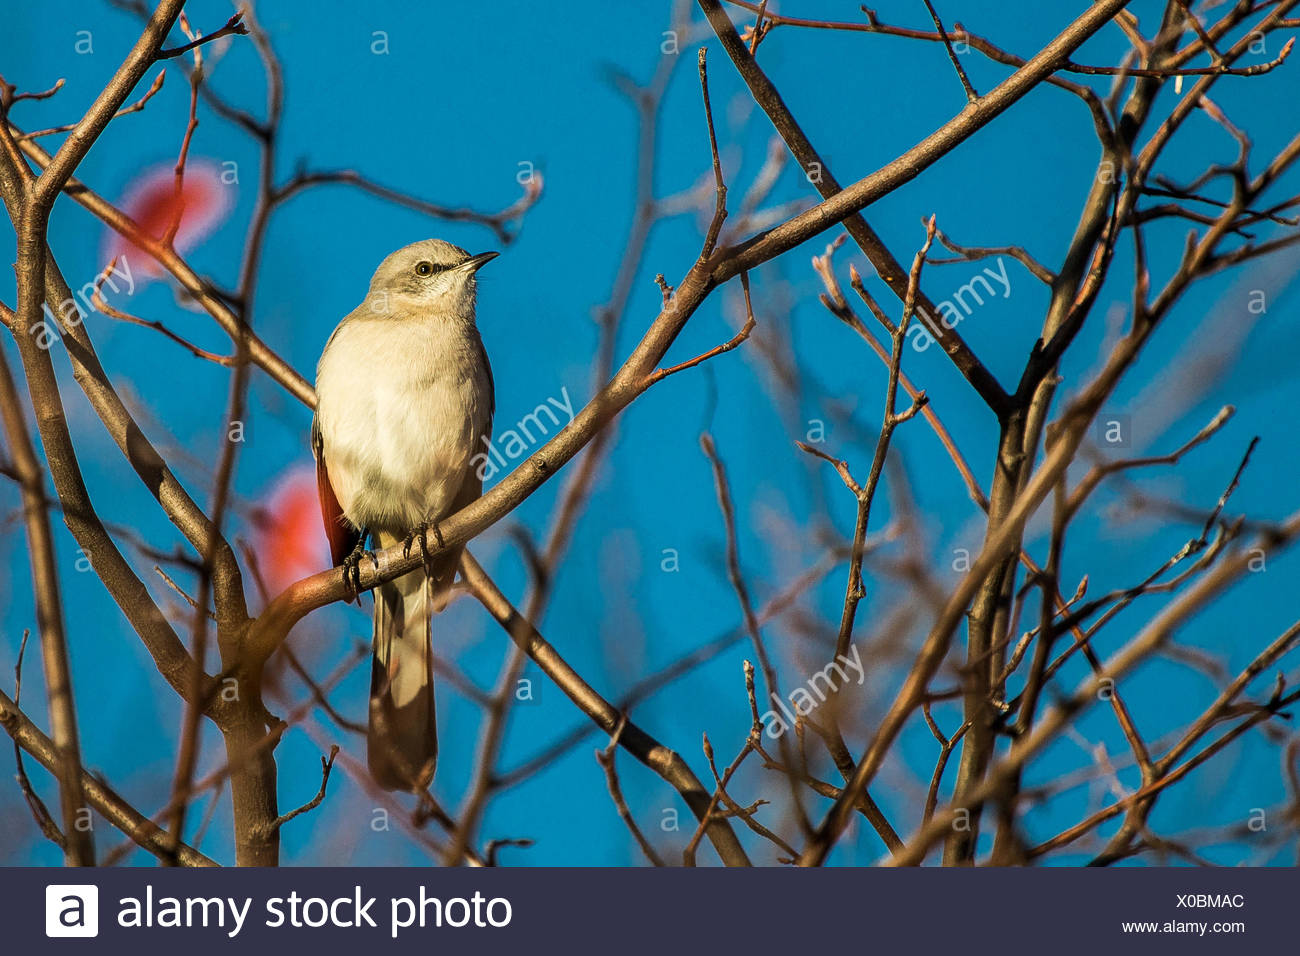 Portrait of a northern mockingbird, Mimus polyglottos, perched in a tree top. Stock Photo